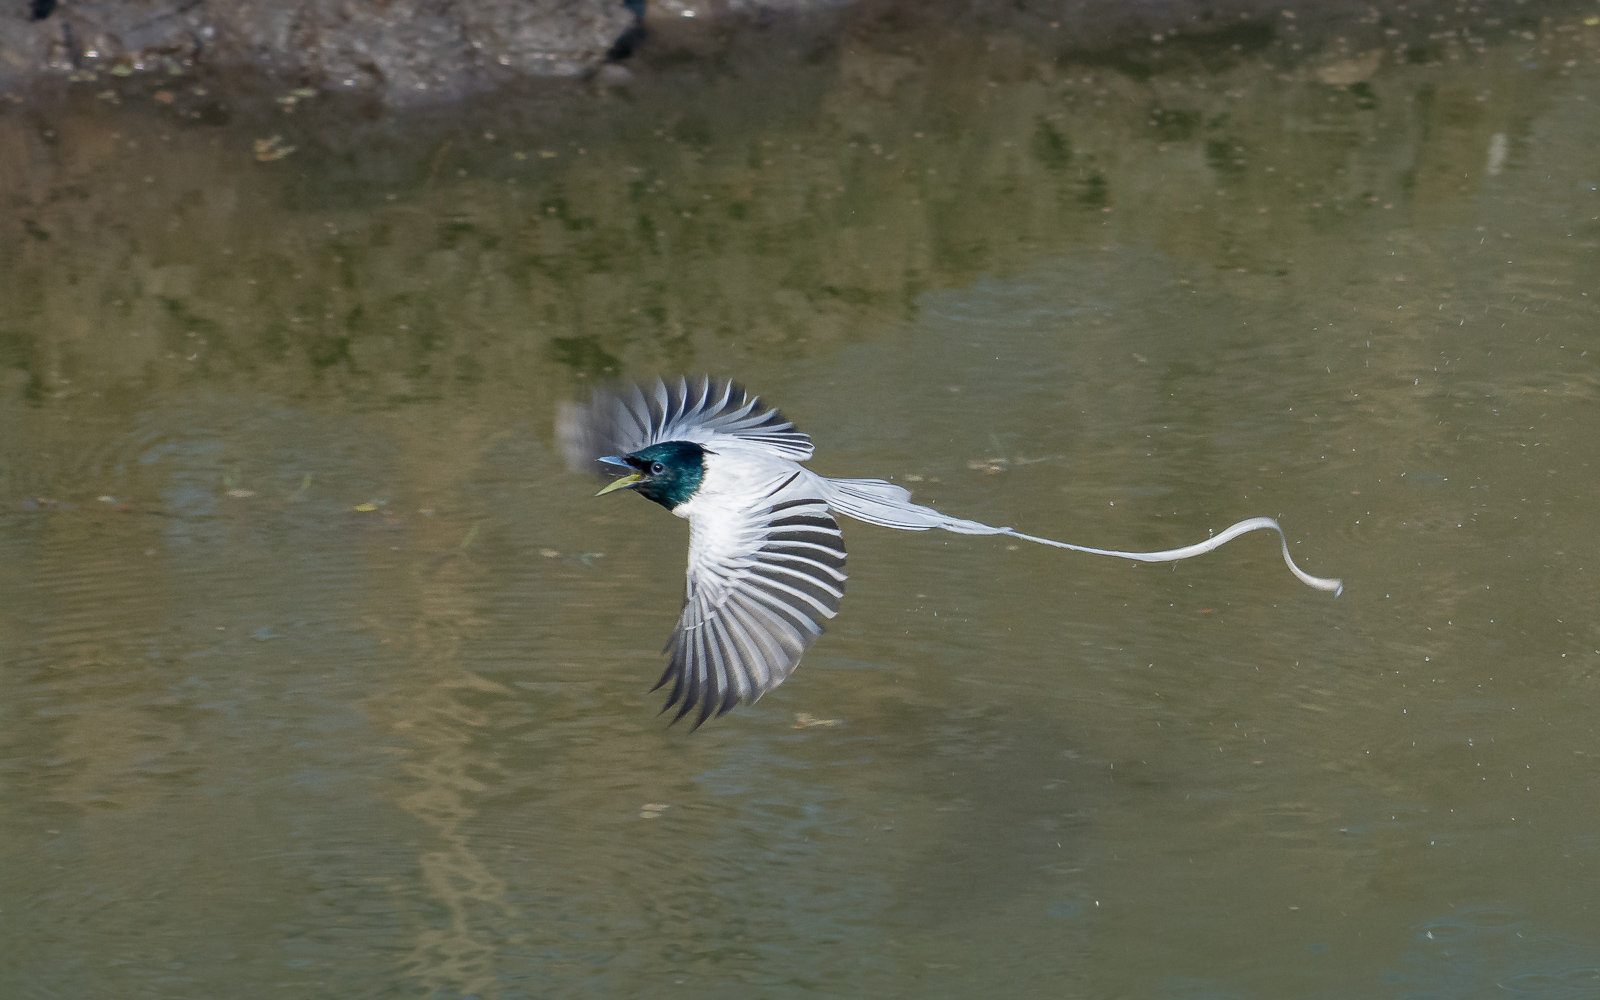 Image: Flight of fast-diving paradise flycatcher. Lens focussed on this fast-moving bird in good lig...